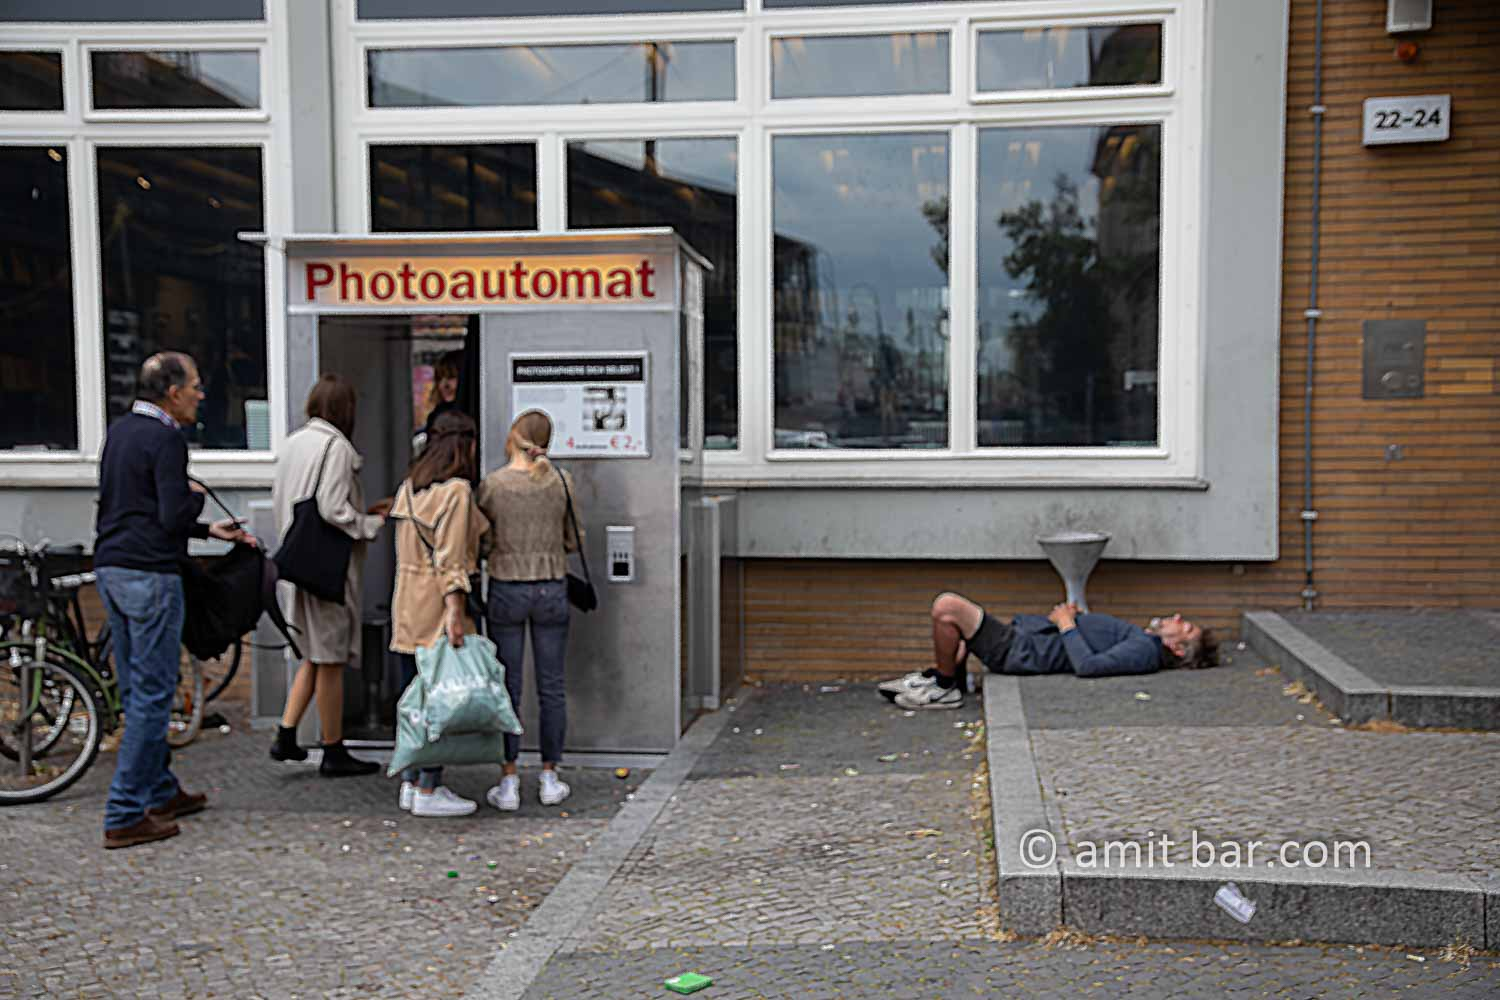 Photoautomat: A runner taking a rest for the benefit of the photo